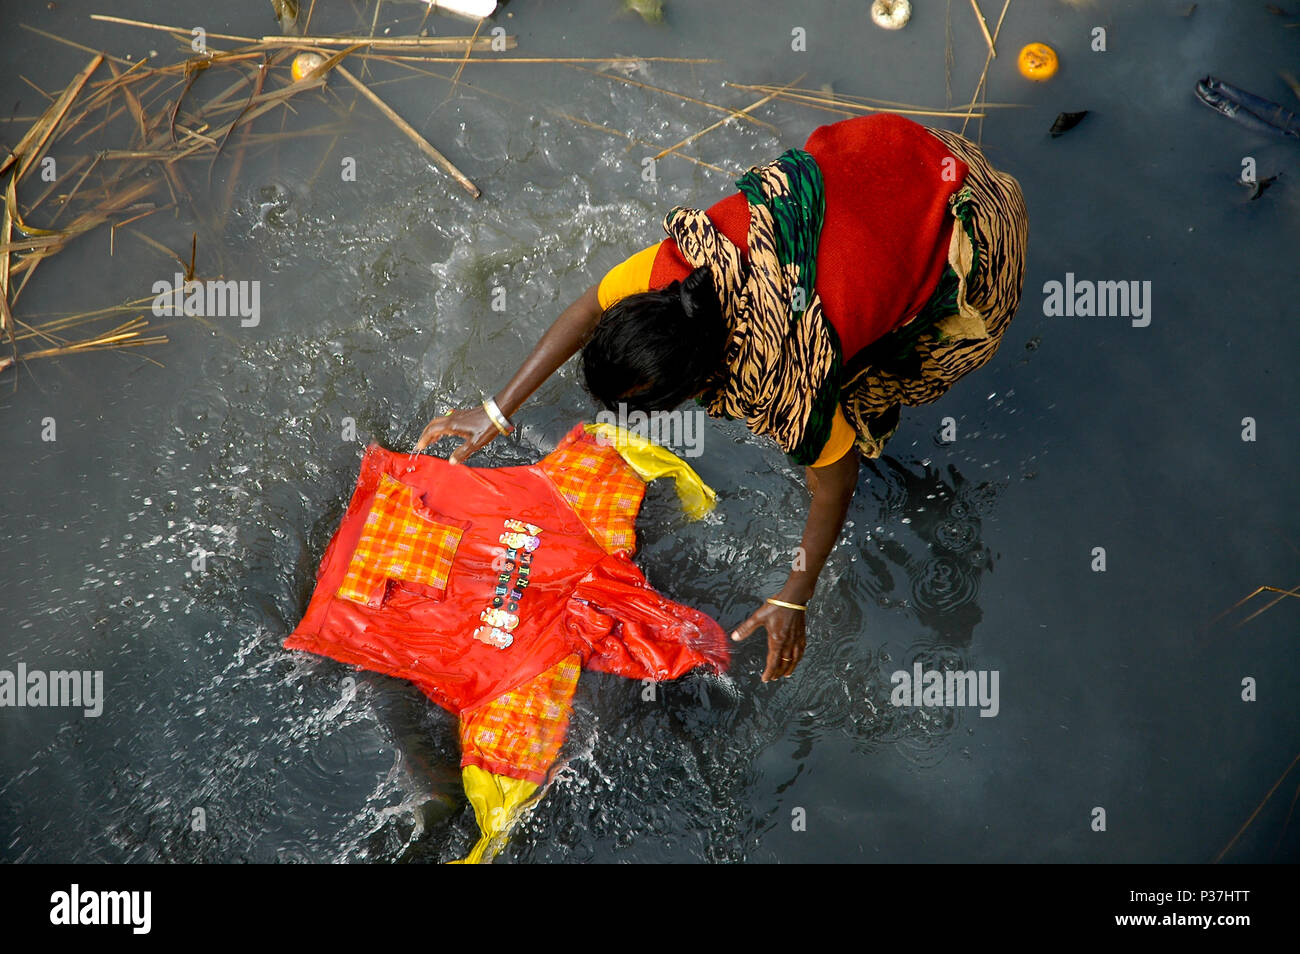 A woman washes cloth in the poisonous and dirty water of Buriganga River. Dhaka, Bangladesh - Stock Image